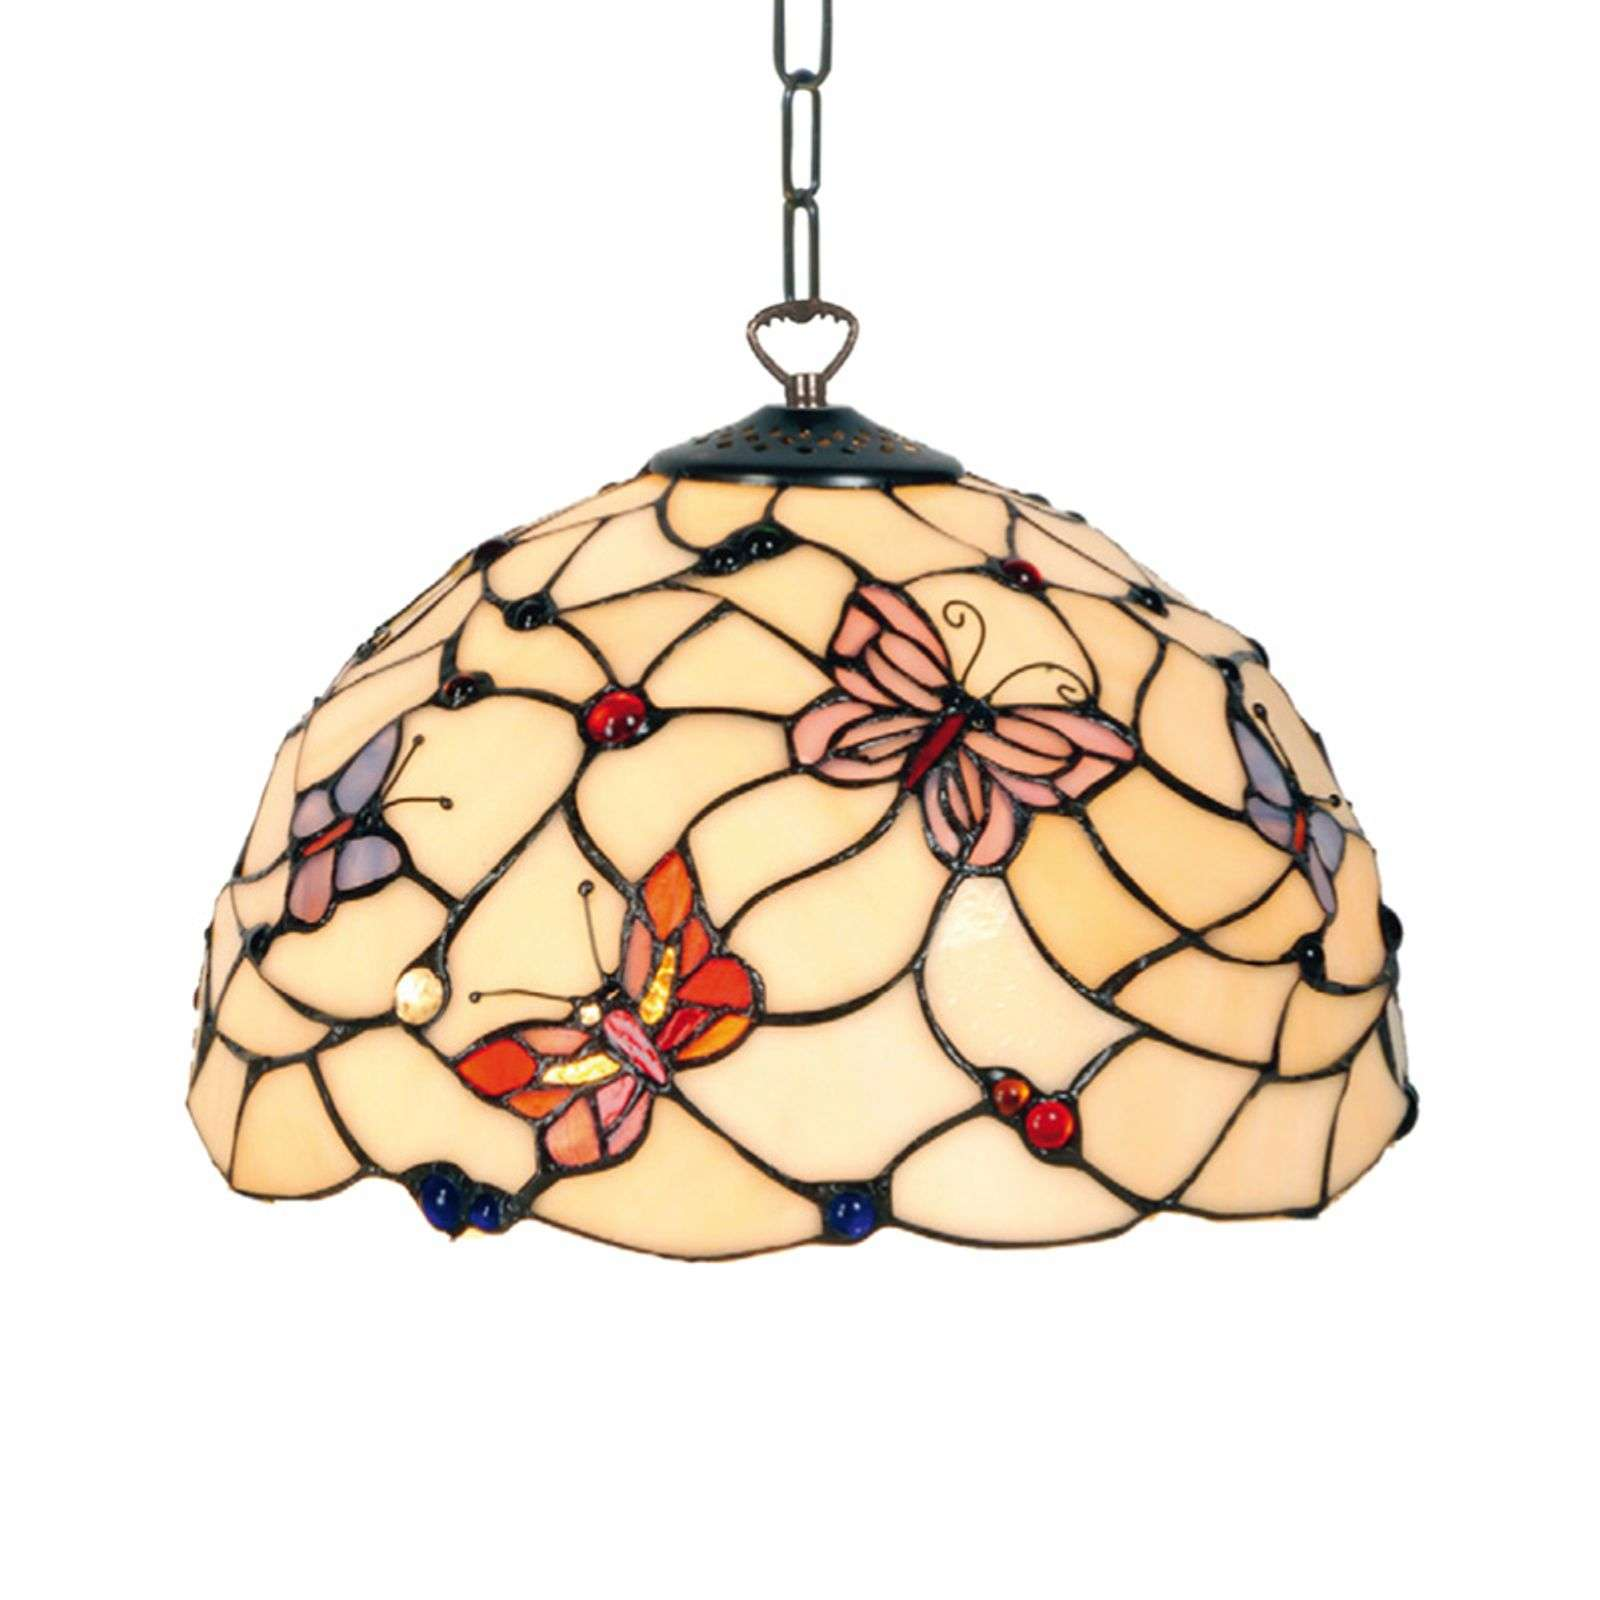 Belle suspension Palina de style Tiffany